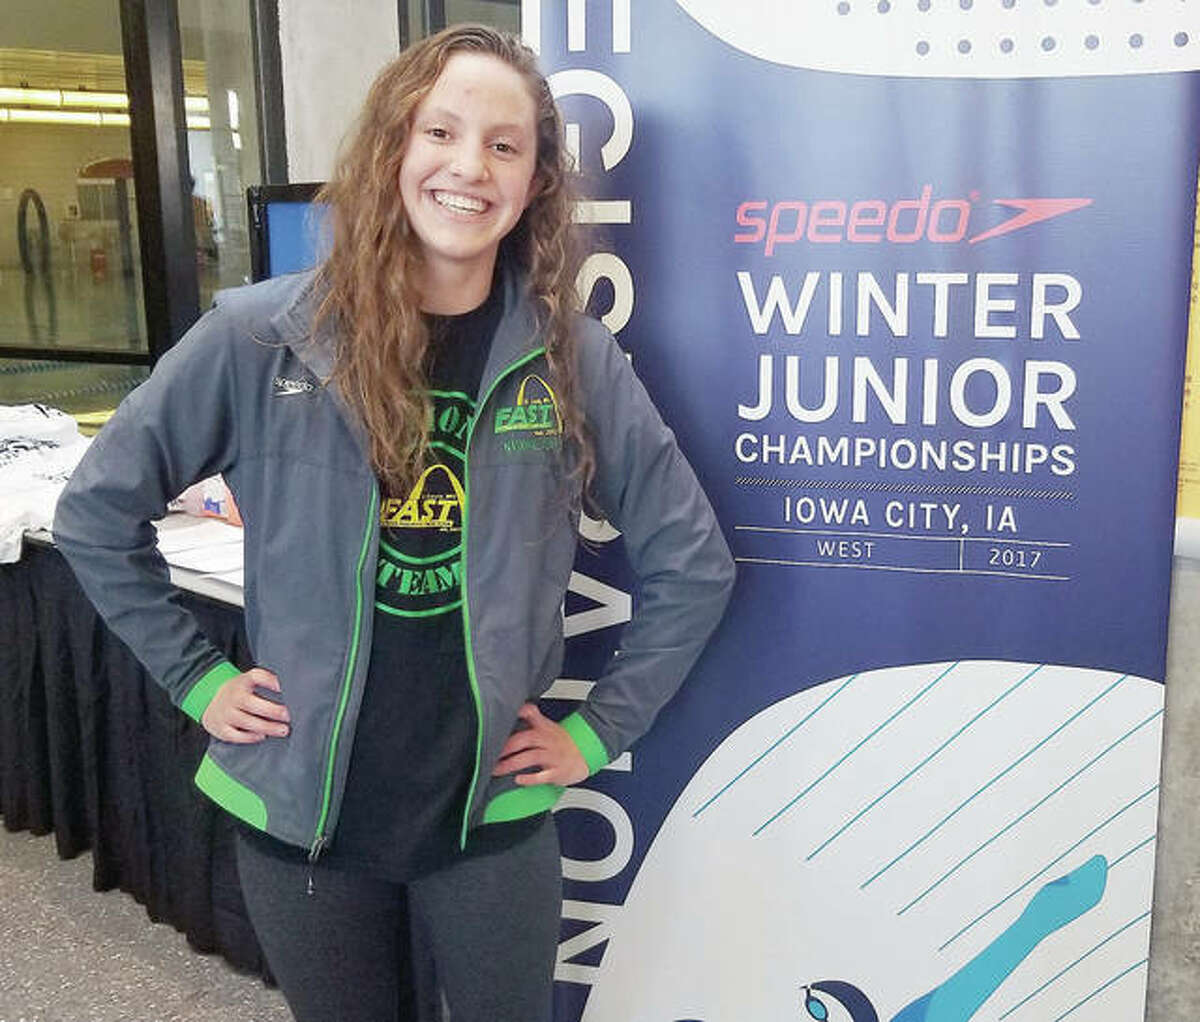 Eleni Kotzamanis, 14, of Godfrey is making waves as a member of the Flyers Aquatic Swim Team in St. Louis. She is pictured at the recent Speedo Winter Junior Championships in Iowa City, Iowa.